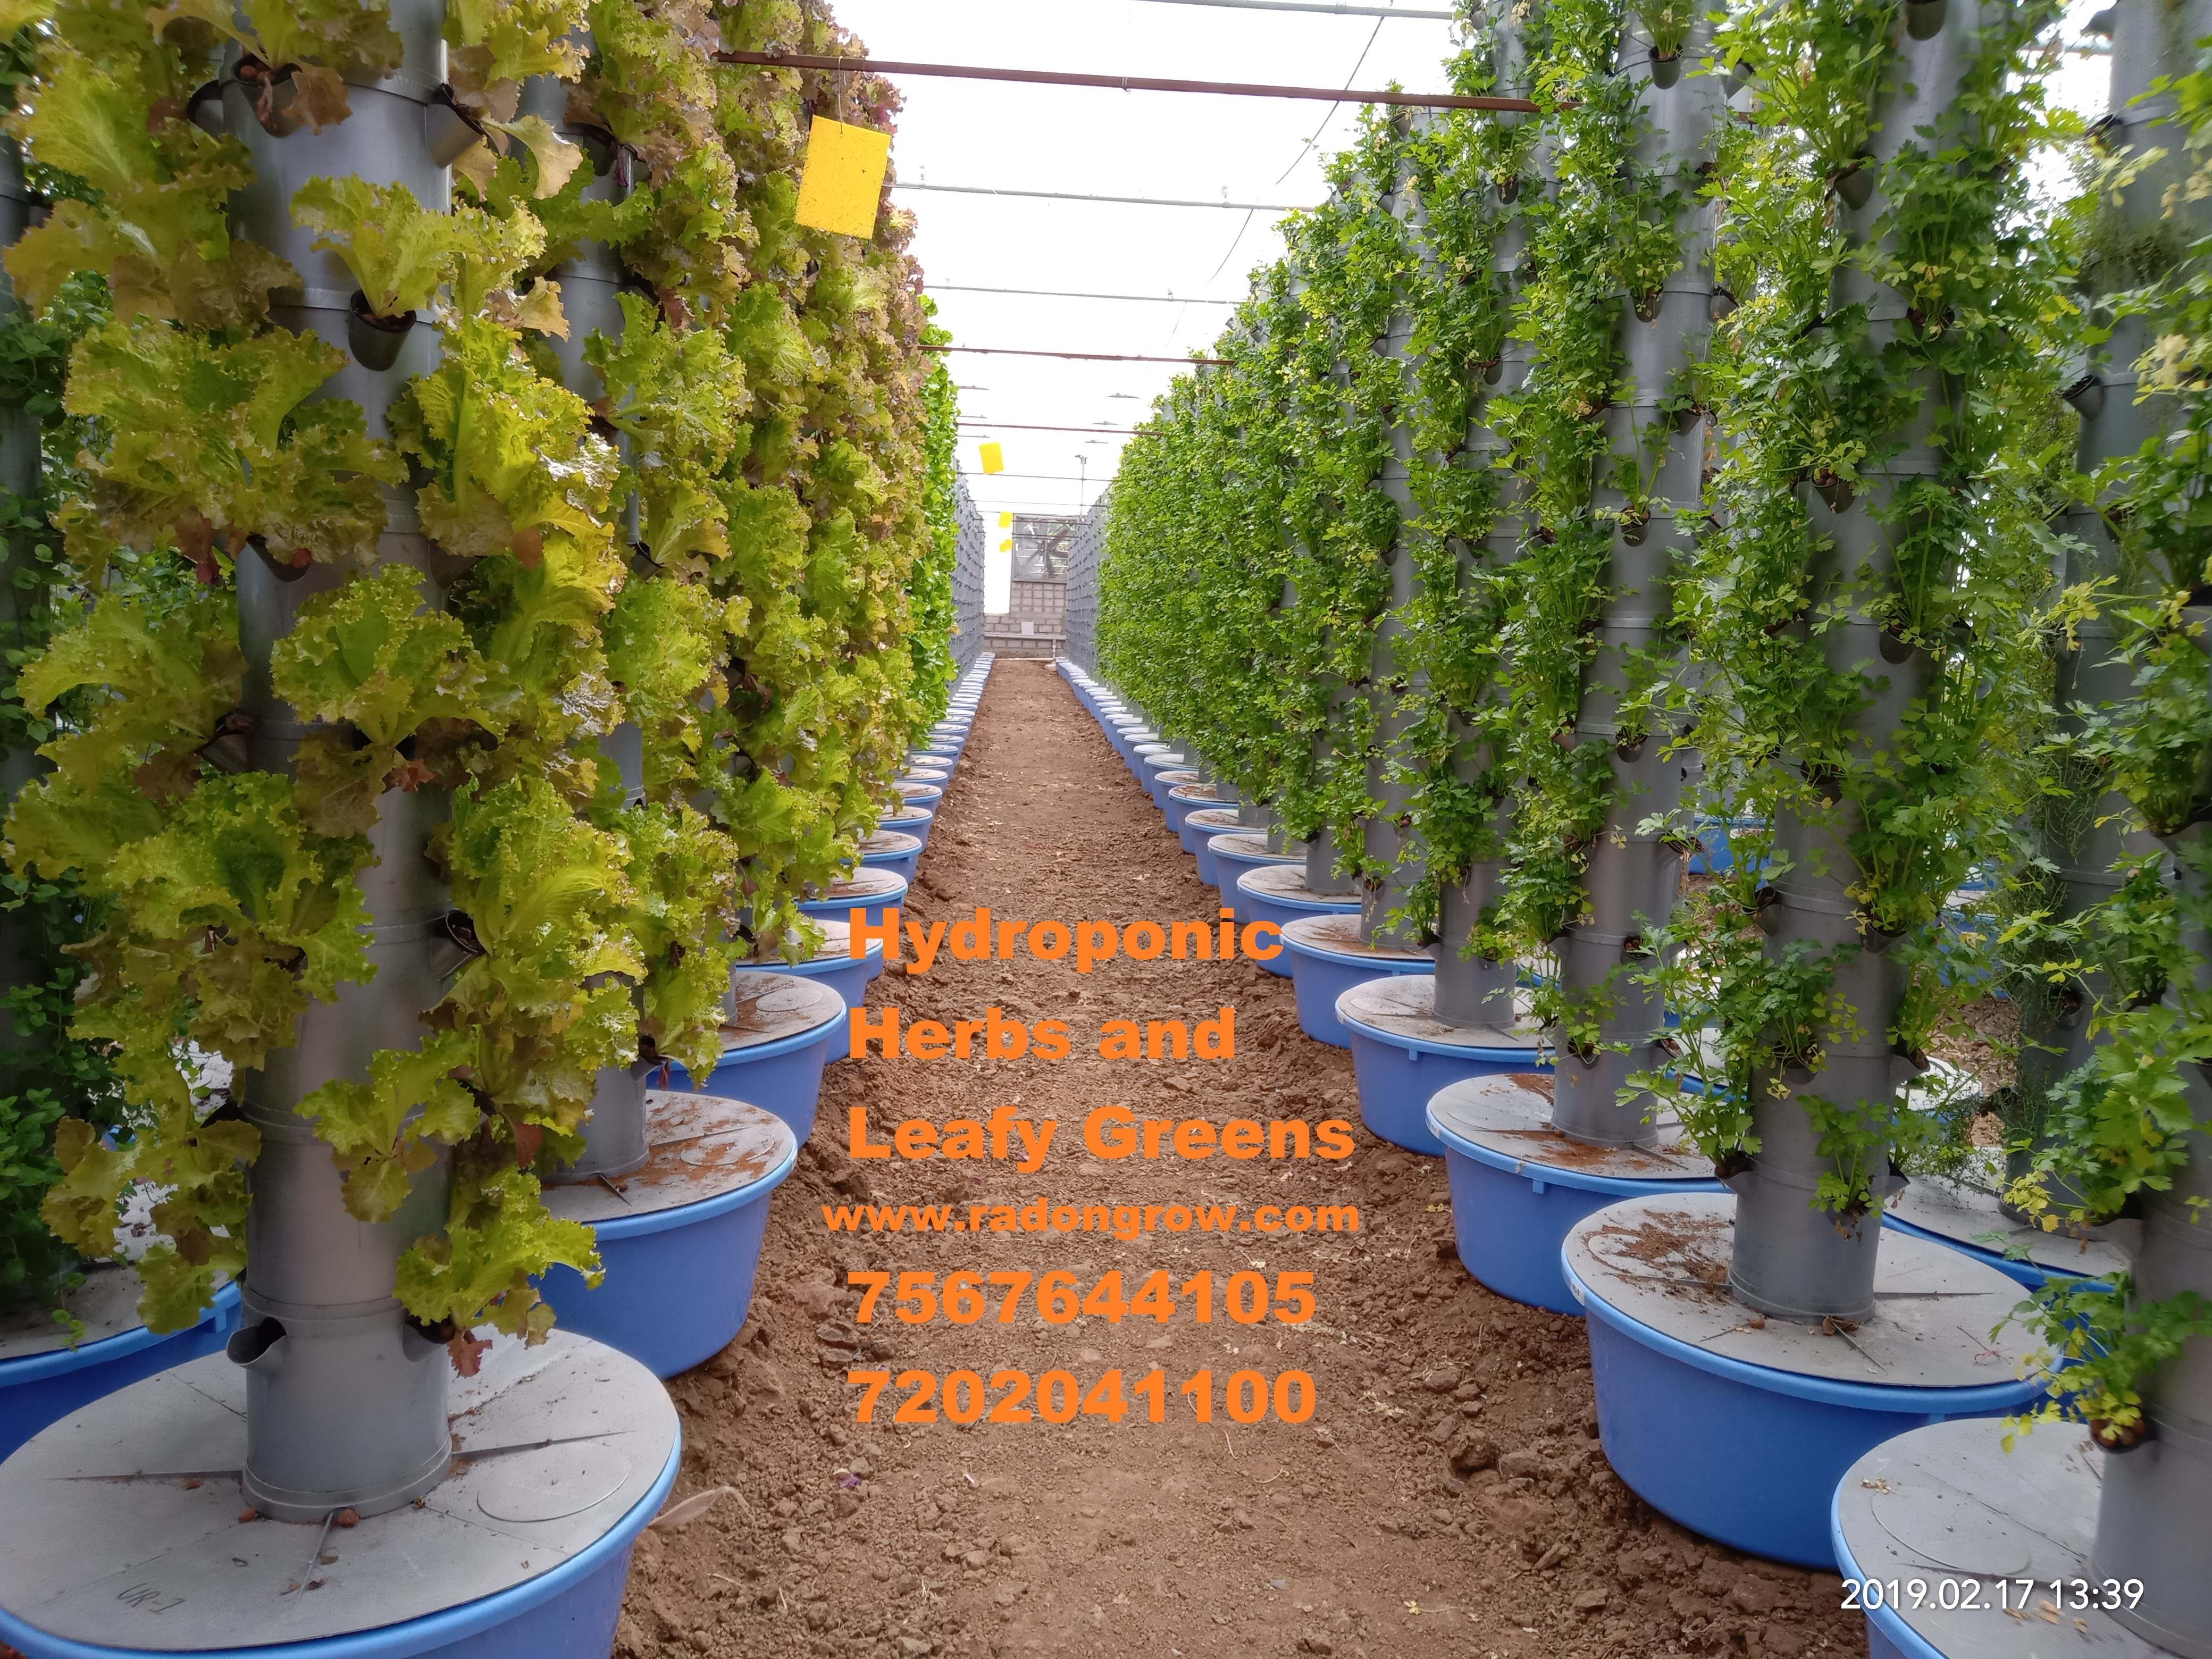 How Much Does It Cost To Make An Acre Of Hydroponic Farm In India